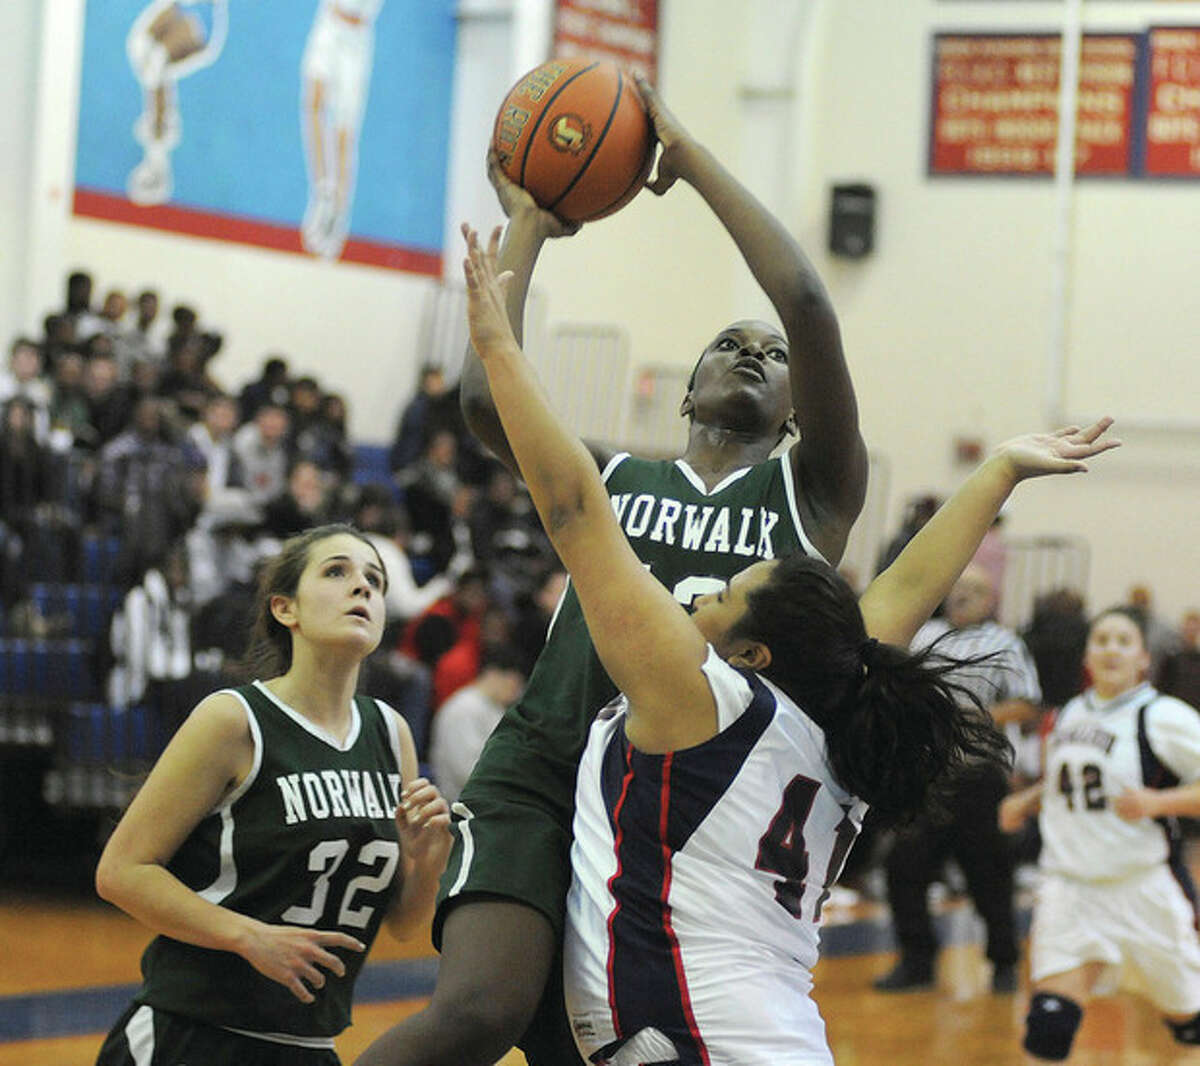 Hour photo/John Nash Norwalk's Emma Oyomba, center, puts up a shot over Brien McMahon's Kiara Velez as Norwalk's Alex Weber looks on during Friday's city showdown at King-Kehoe Gym on the McMahon campus. Oyomba led the Bears to a 44-39 victory.